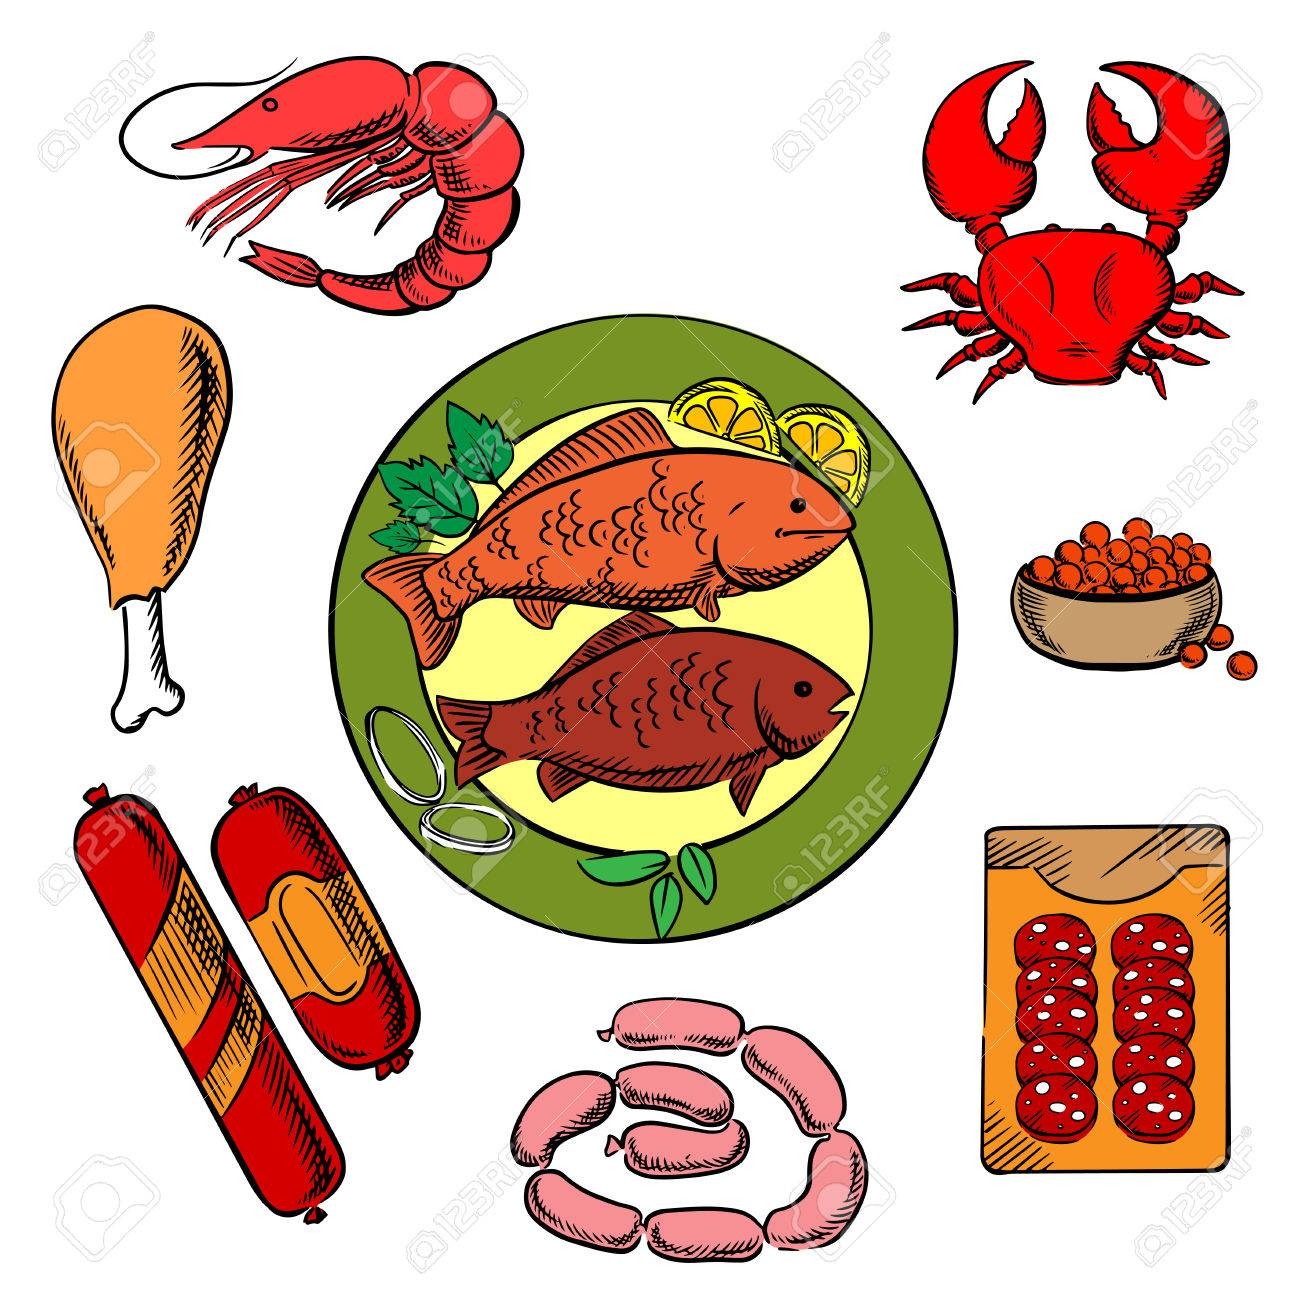 seafood chicken and meat food icons with fish crab prawn rh 123rf com Cheese Clip Art Steak Clip Art